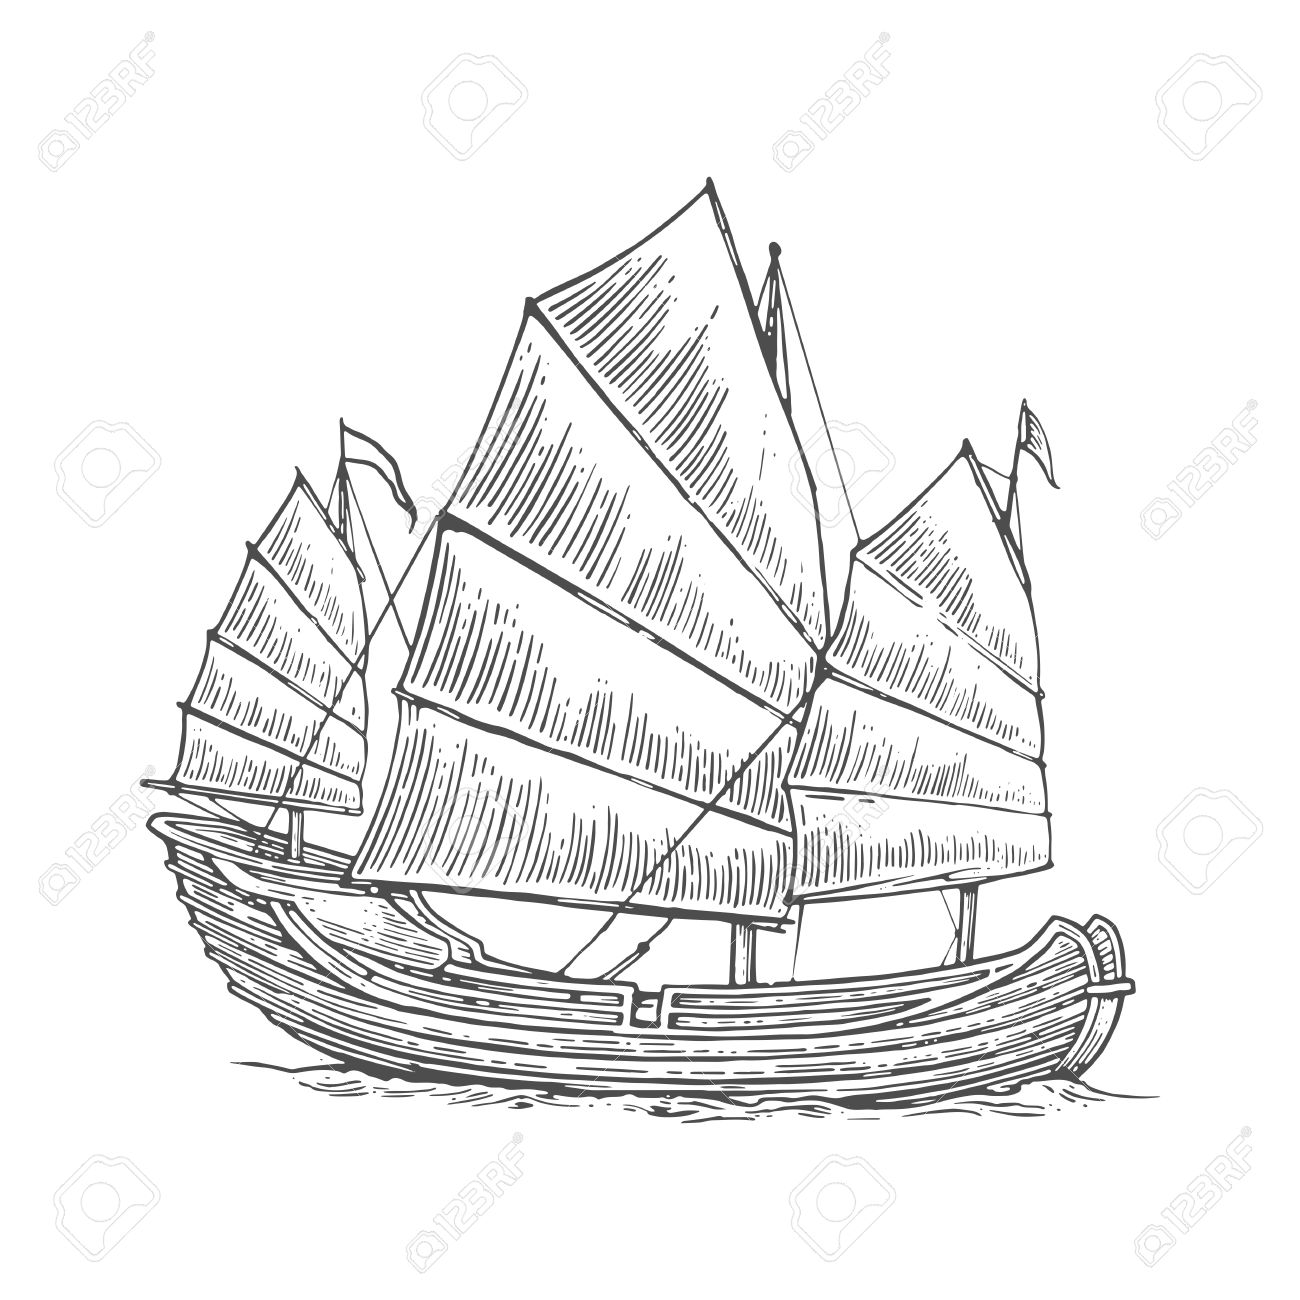 1300x1300 Junk Floating On The Sea Waves. Hand Drawn Design Element Sailing